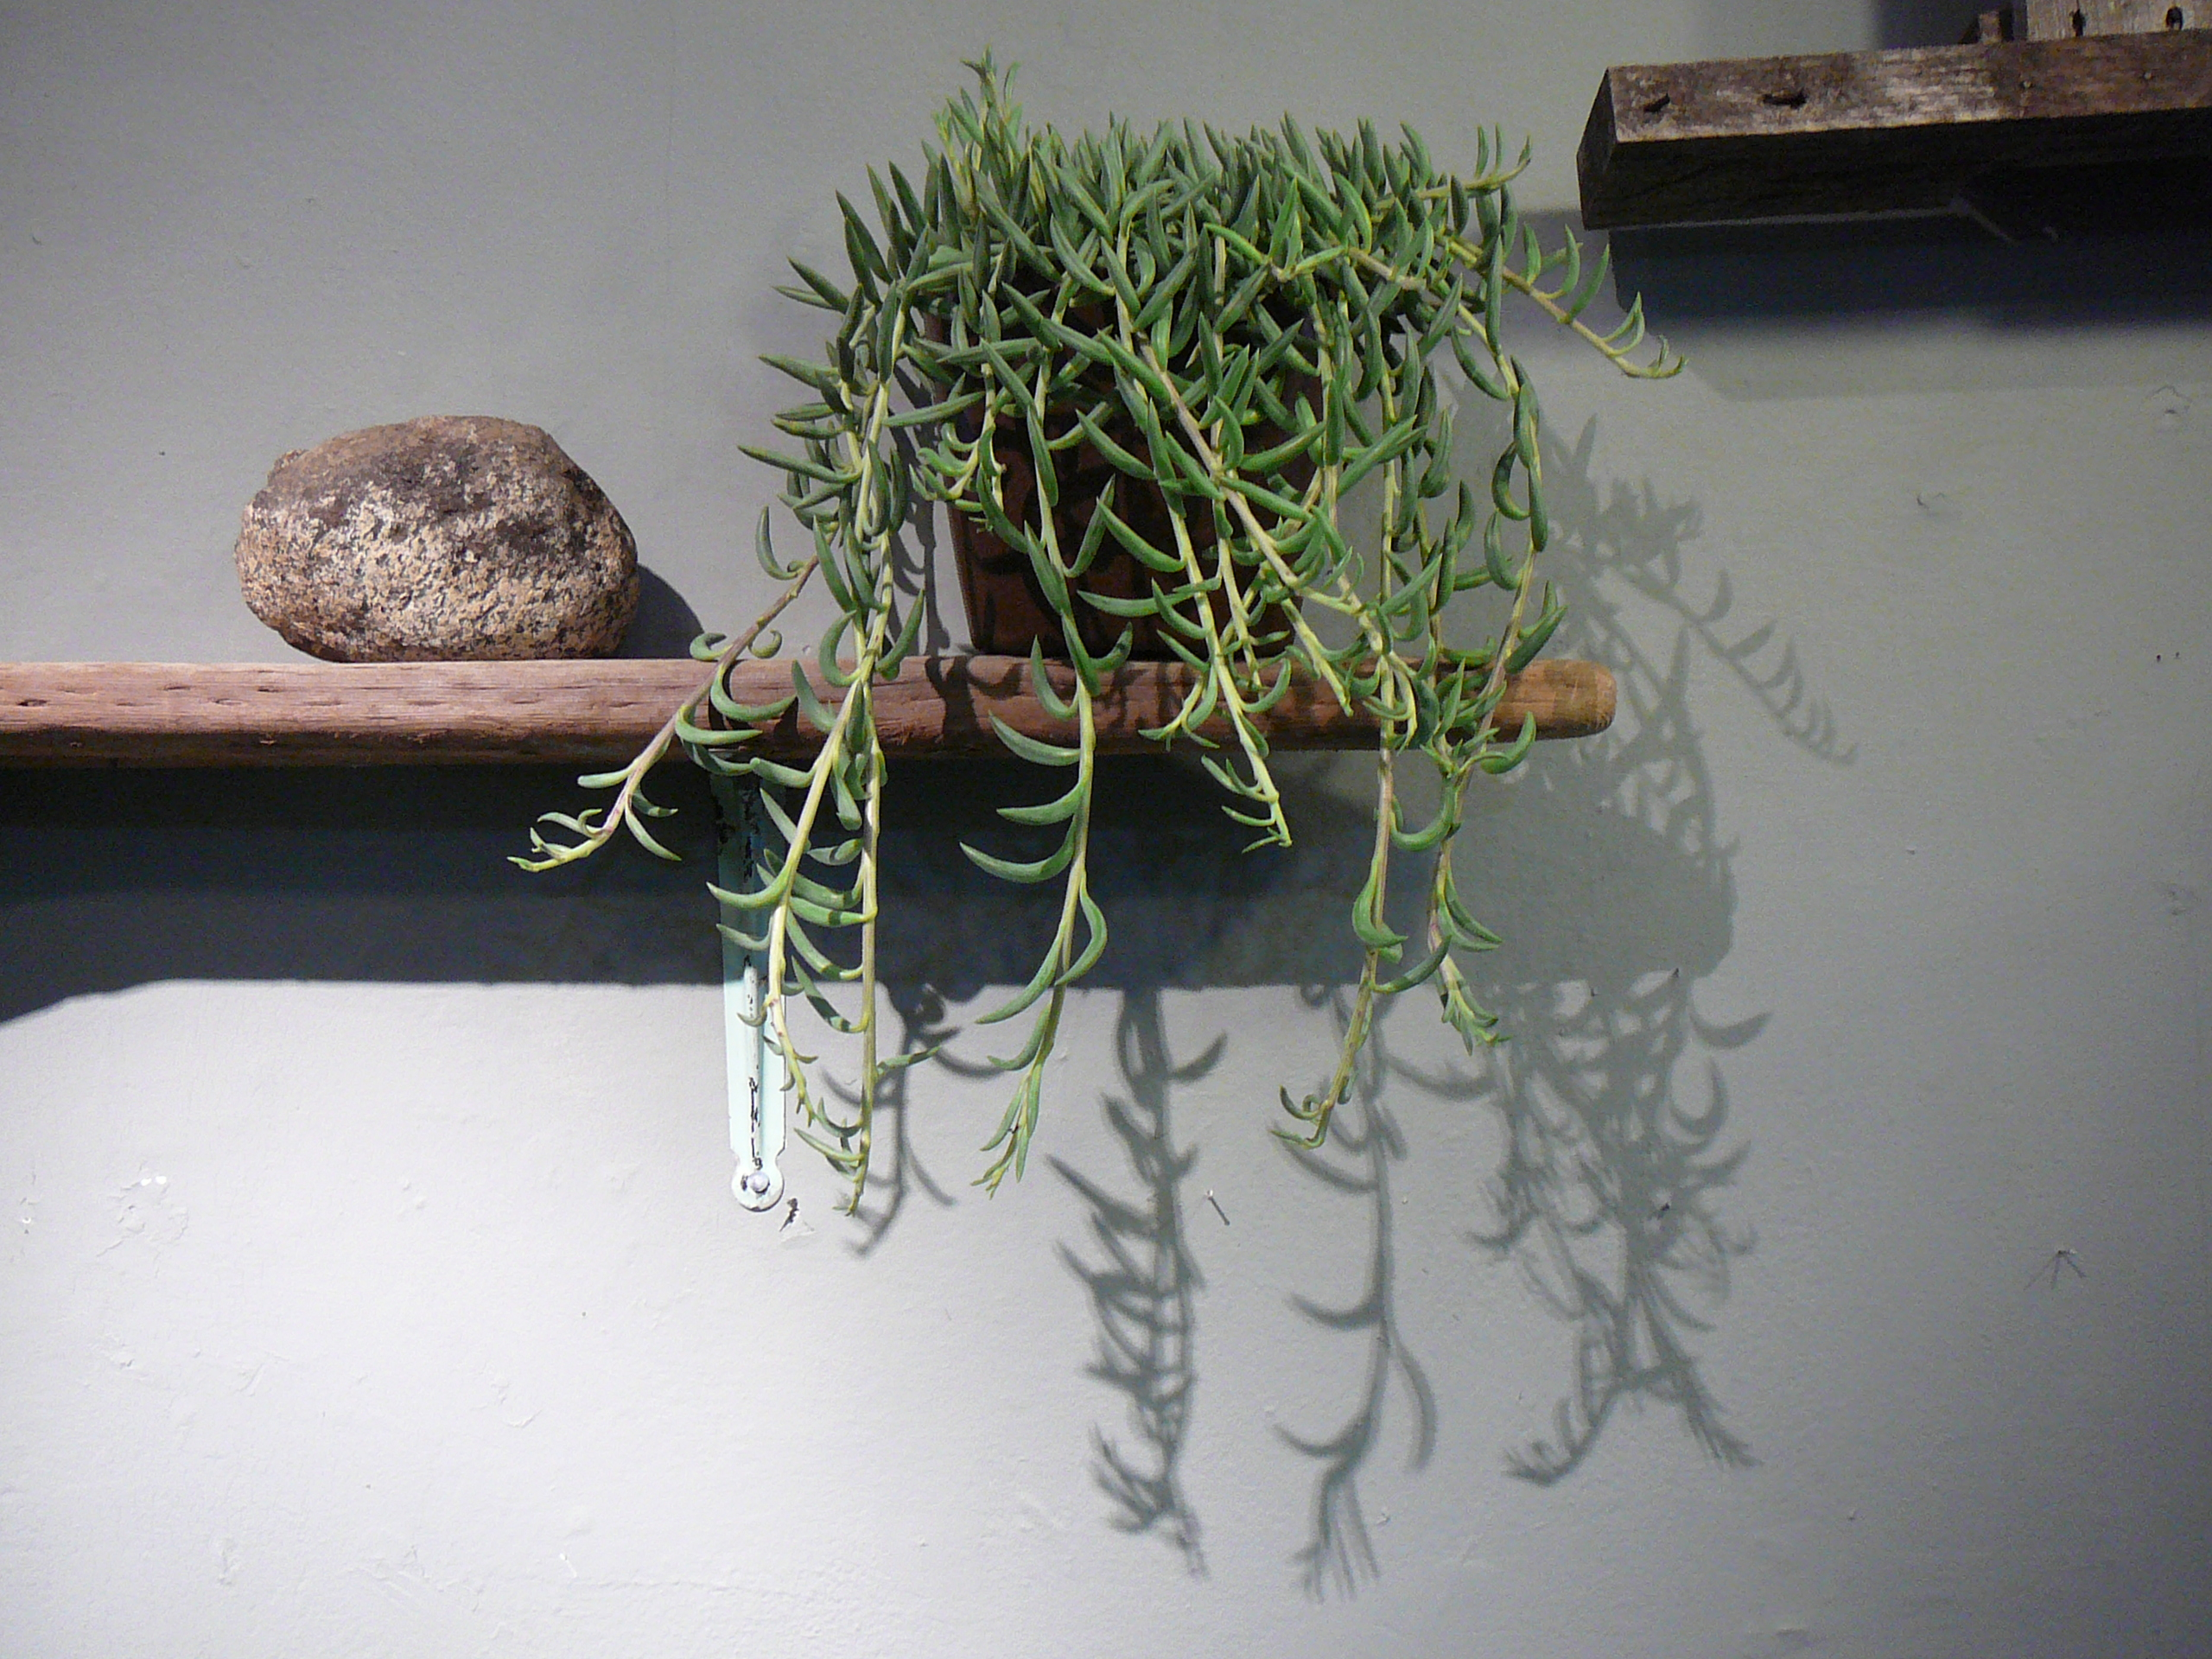 String of banana plant care - Senecio Radicans